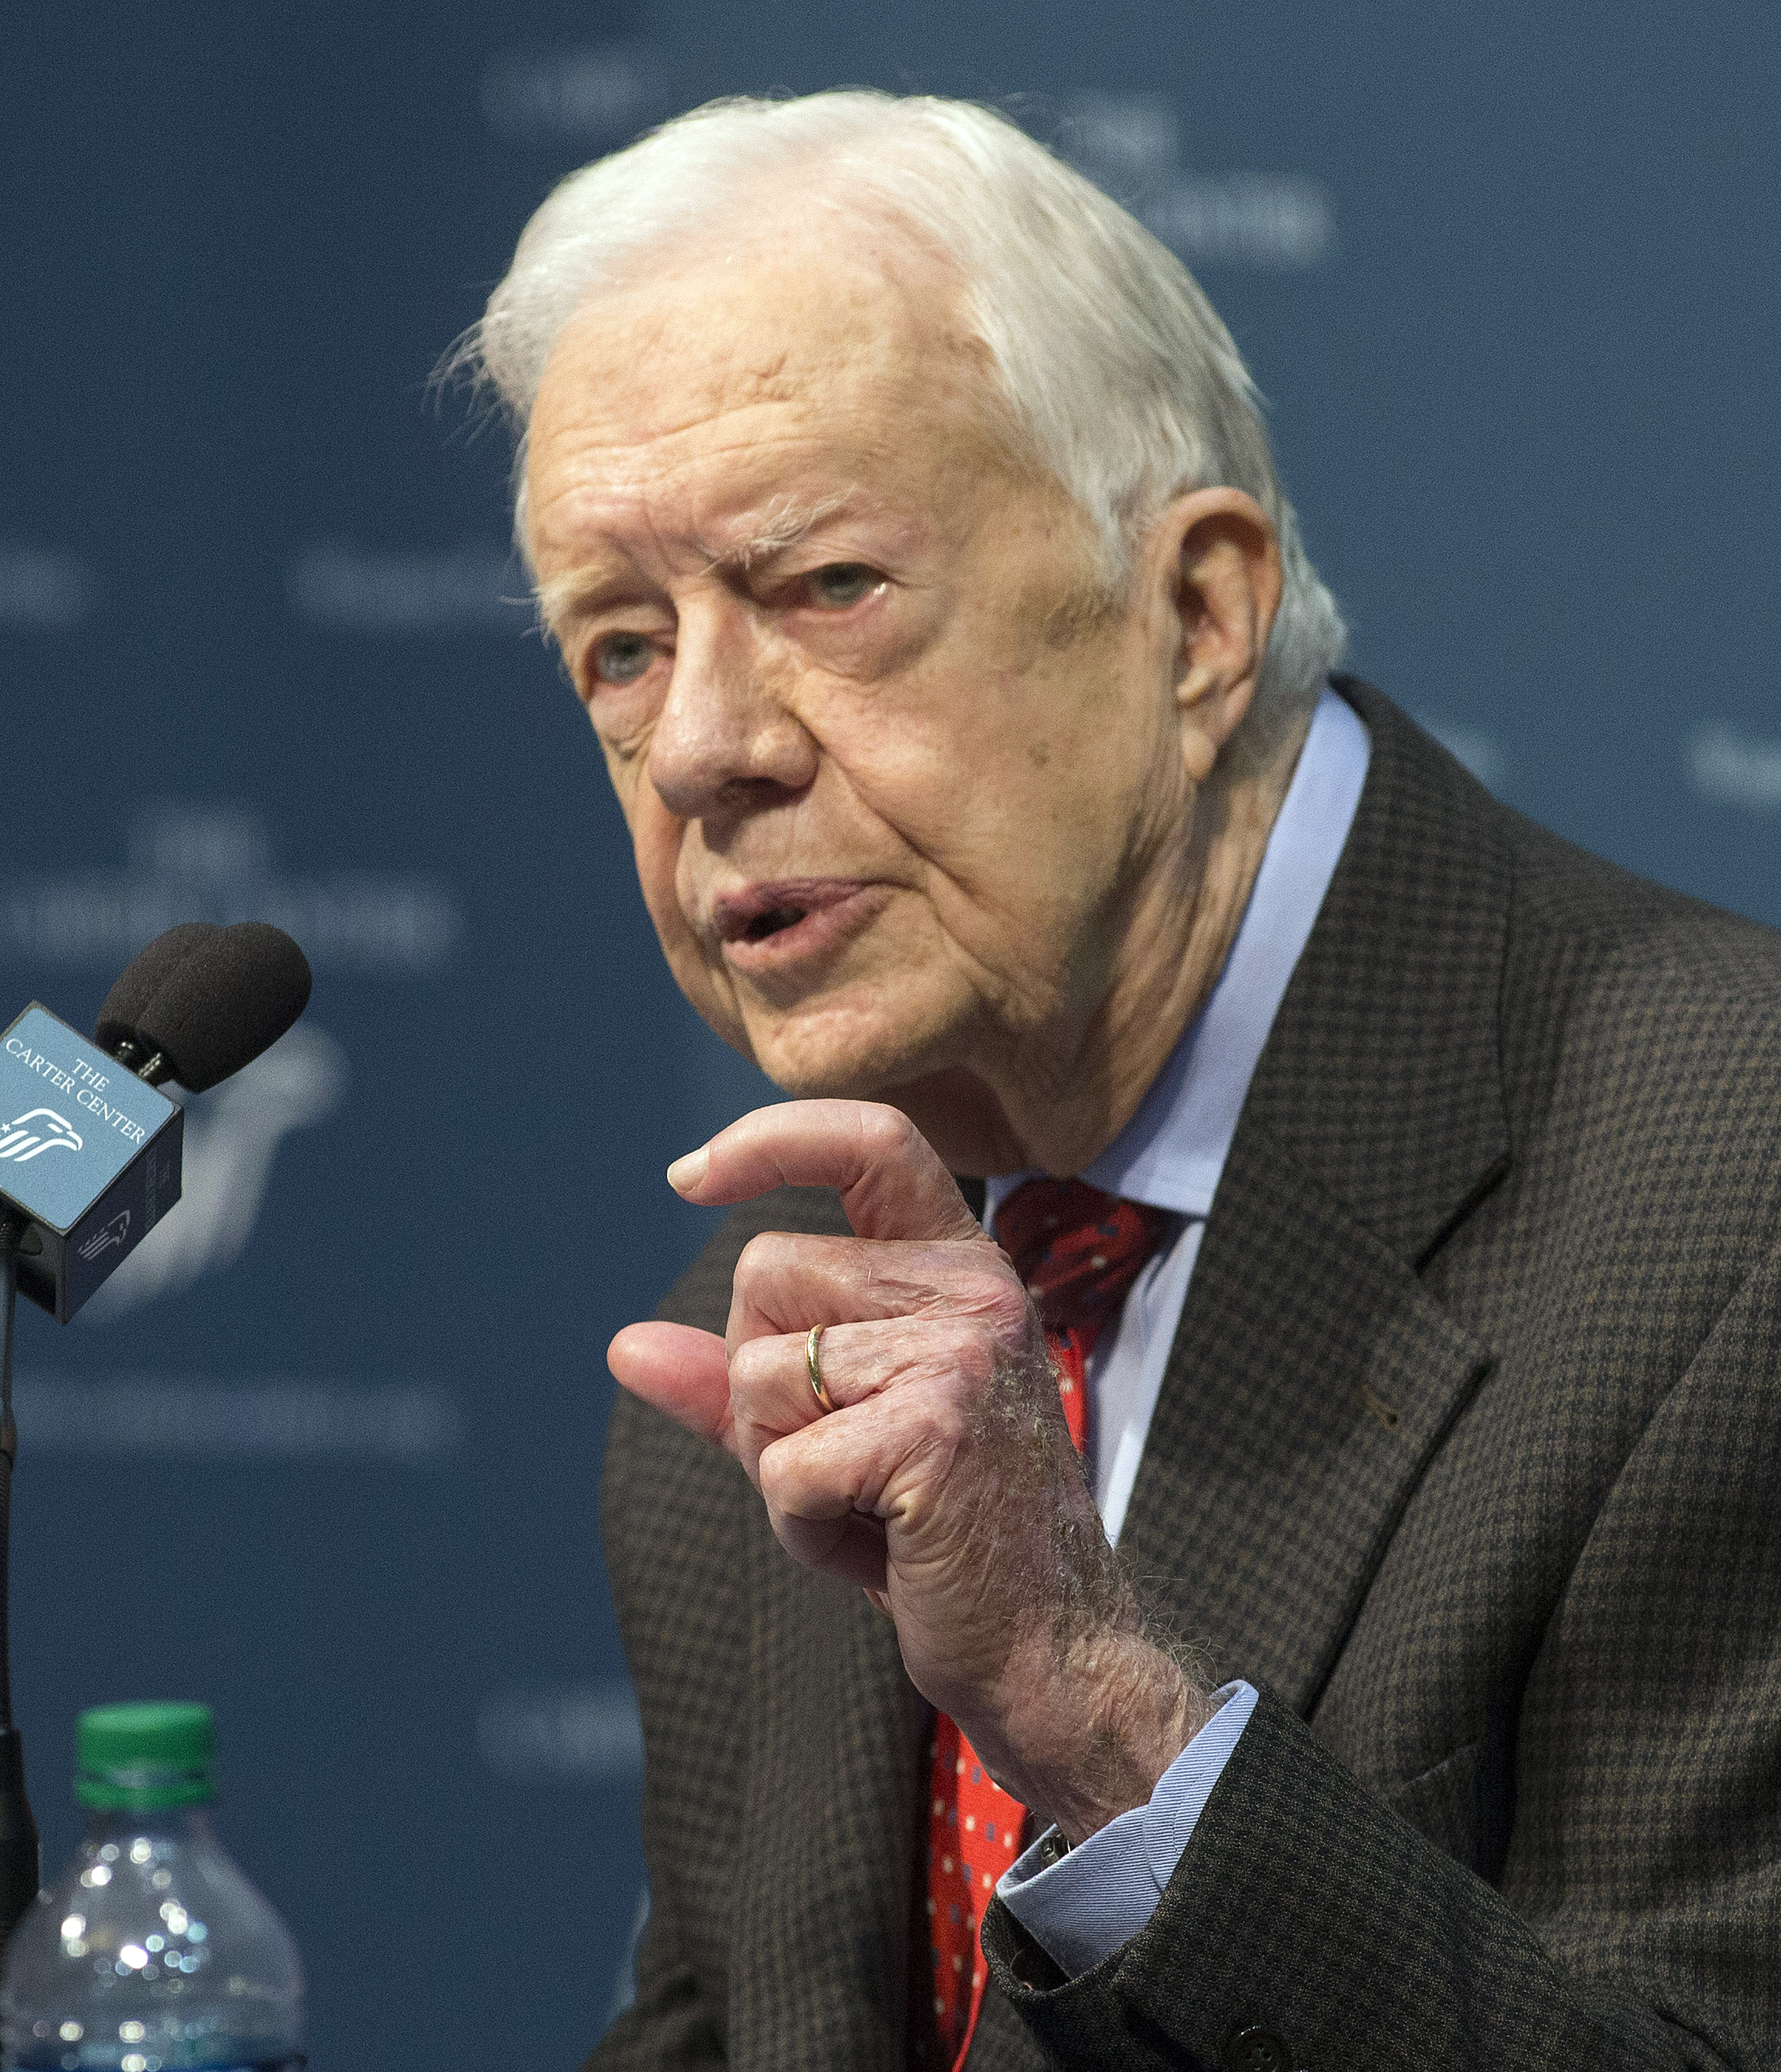 jimmy carter - photo #26